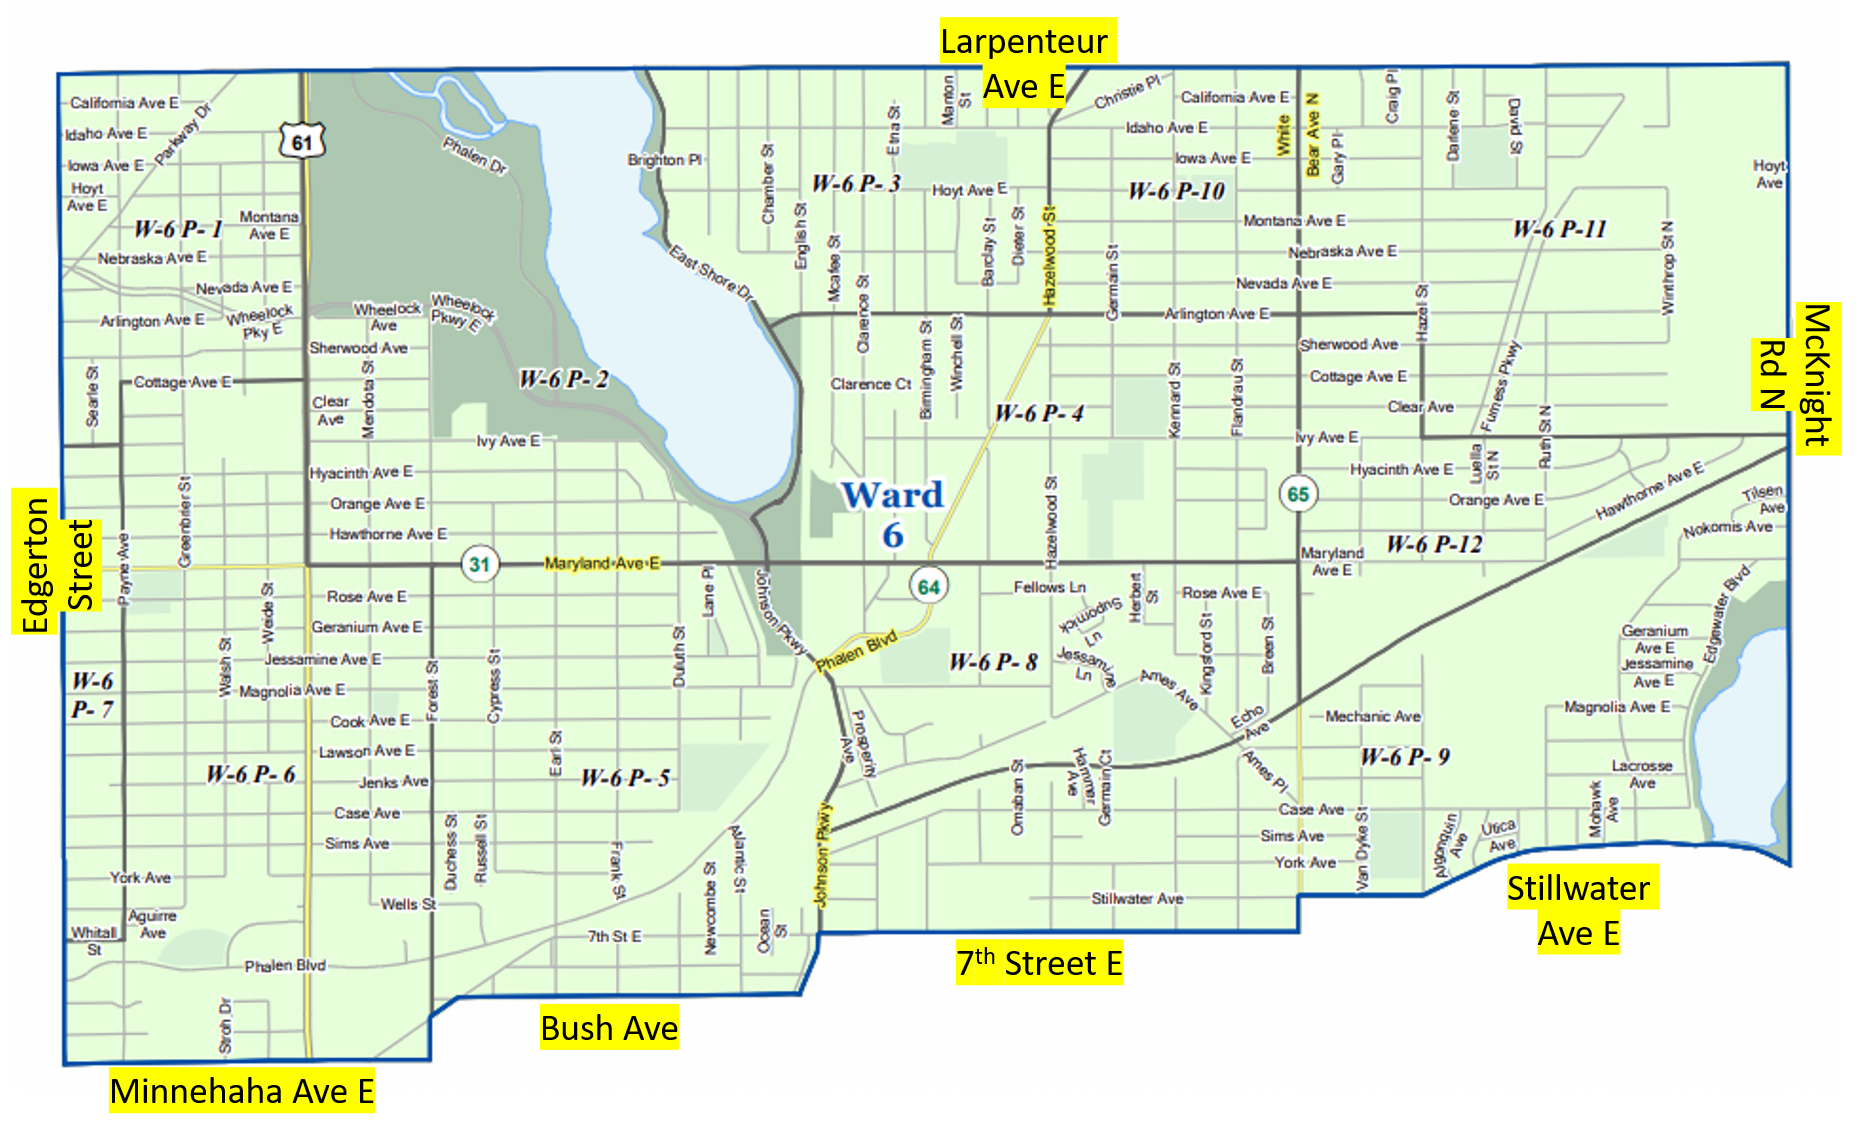 Map of Saint Paul's Ward 6, showing boundary streets. North boundary is Larpenteur Avenue. East boundary is McKnight Road. South boundaries are Minnehaha Avenue East, Bush Avenue, 7th Street East, and Stillwater Avenue. West boundary is Edgerton Street.